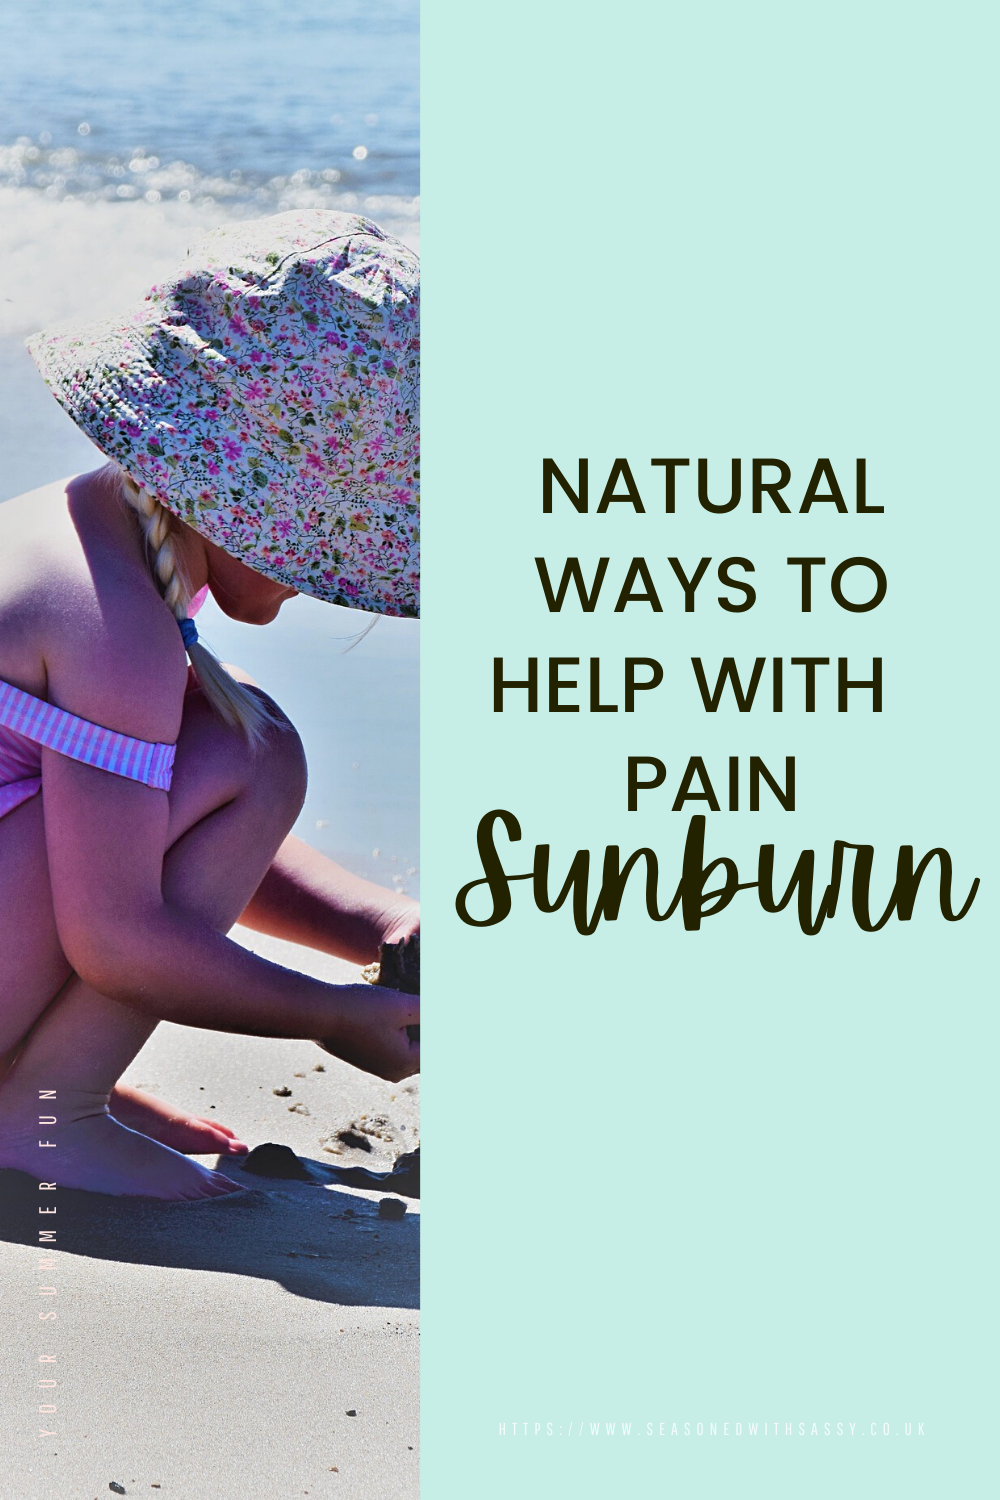 Natural Ways to Help With Sunburn Pain